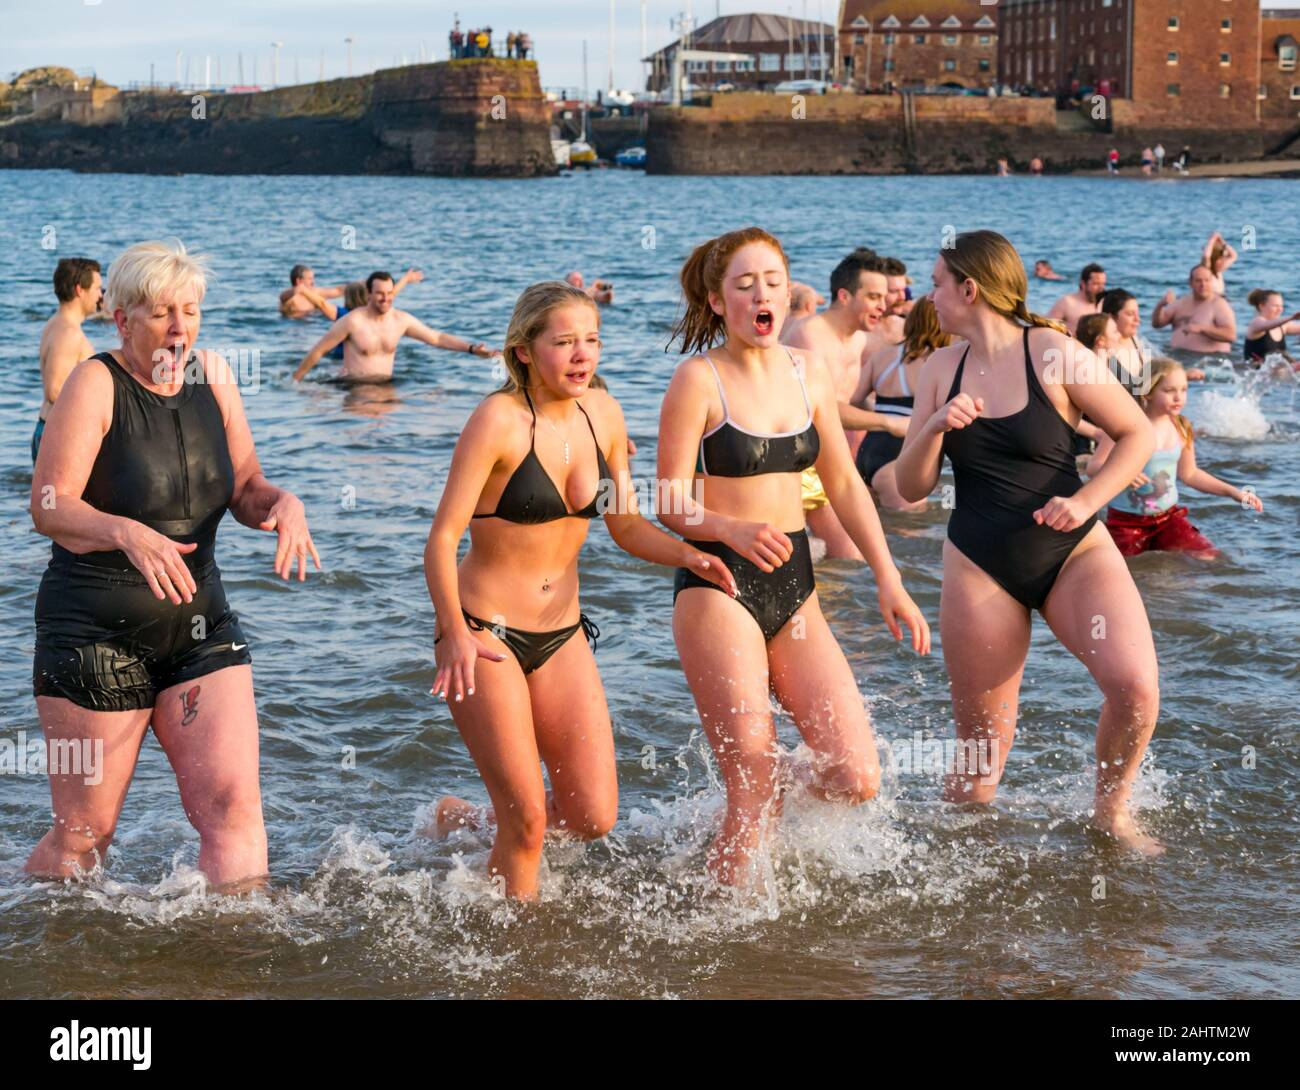 North Berwick, East Lothian, United Kingdom, 01 January 2020. Loony Dook: Hundreds of people brave the chilly water of the Firth of Forth to welcome 2020 in a Scottish New Year tradition, or New Year's Dip. A group of young women wearing bikinis and an older woman come out of the sea feeling very cold Stock Photo